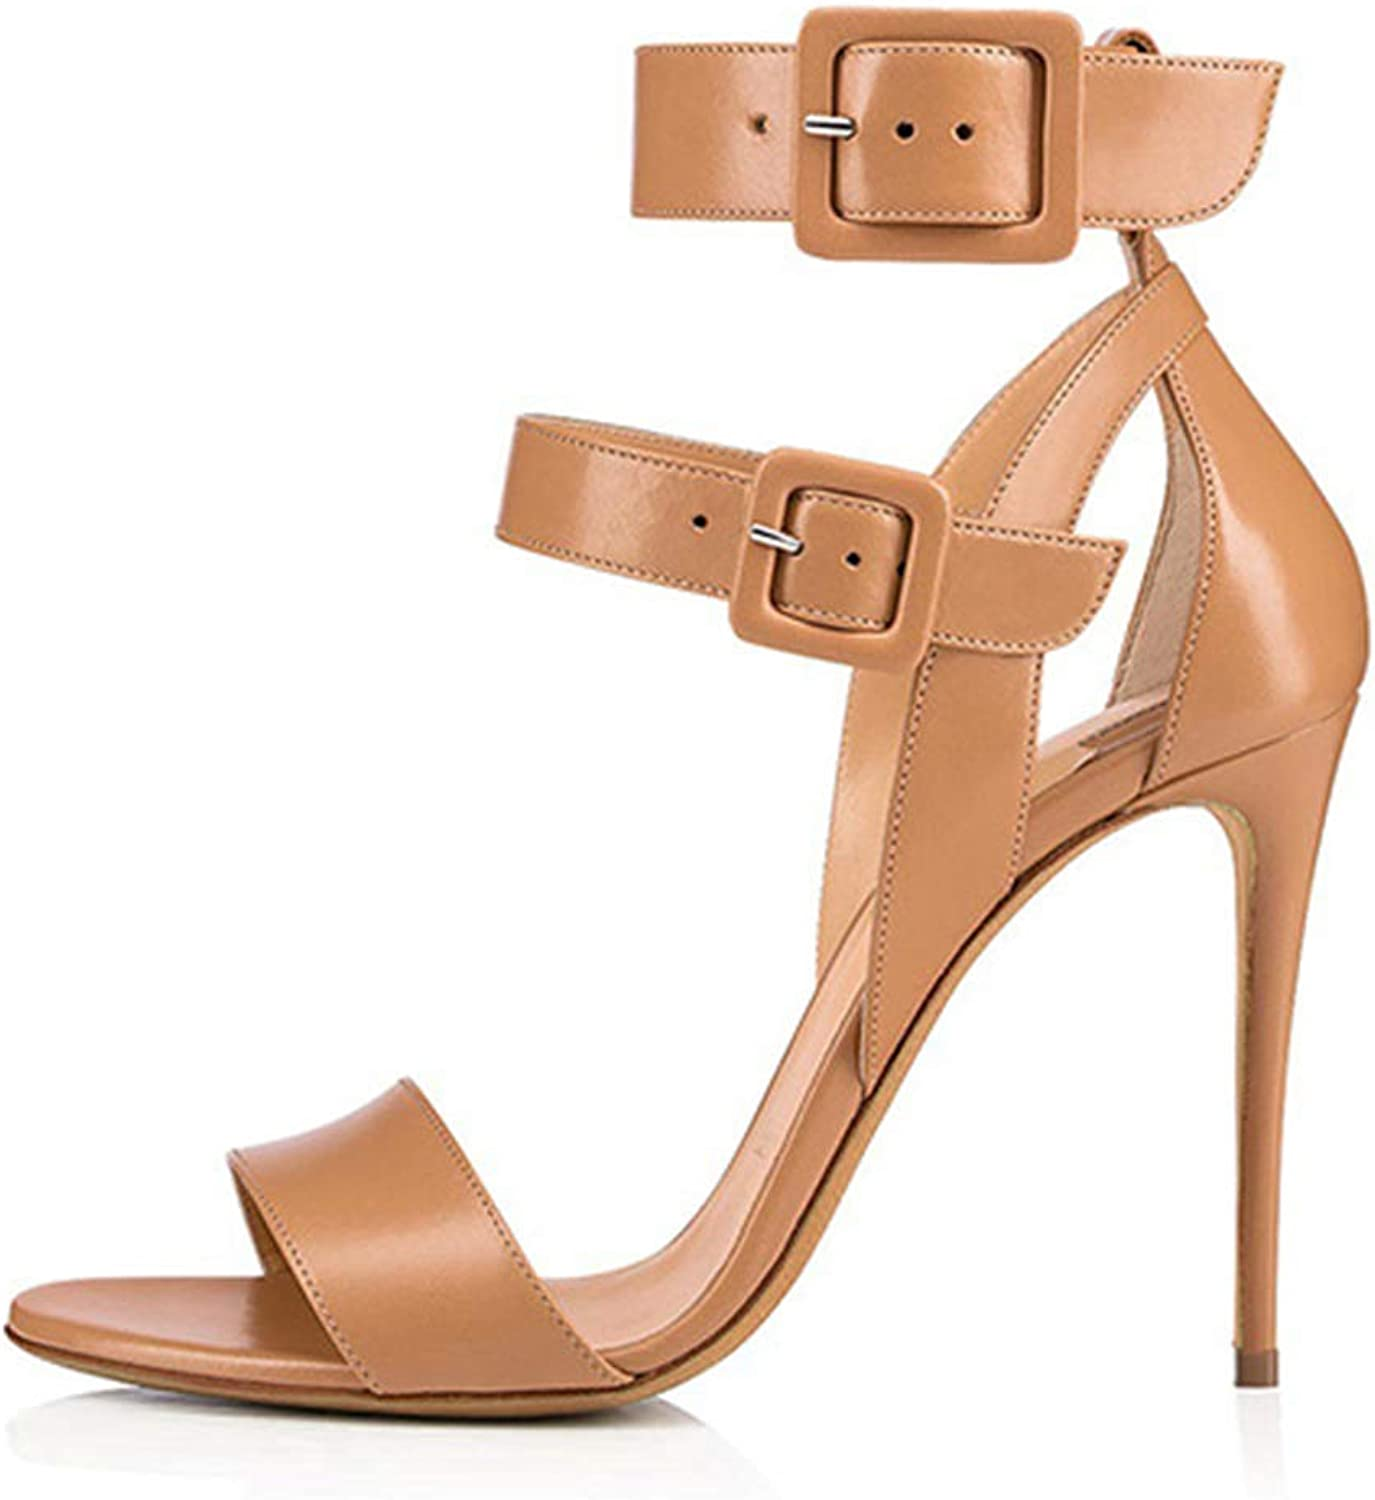 Women's Ladies Summer Heeled Sandals High Heel shoes Stiletto Heels shoes Pumps Peep Open Toe Ankle Buckle Dress Party Black Brown